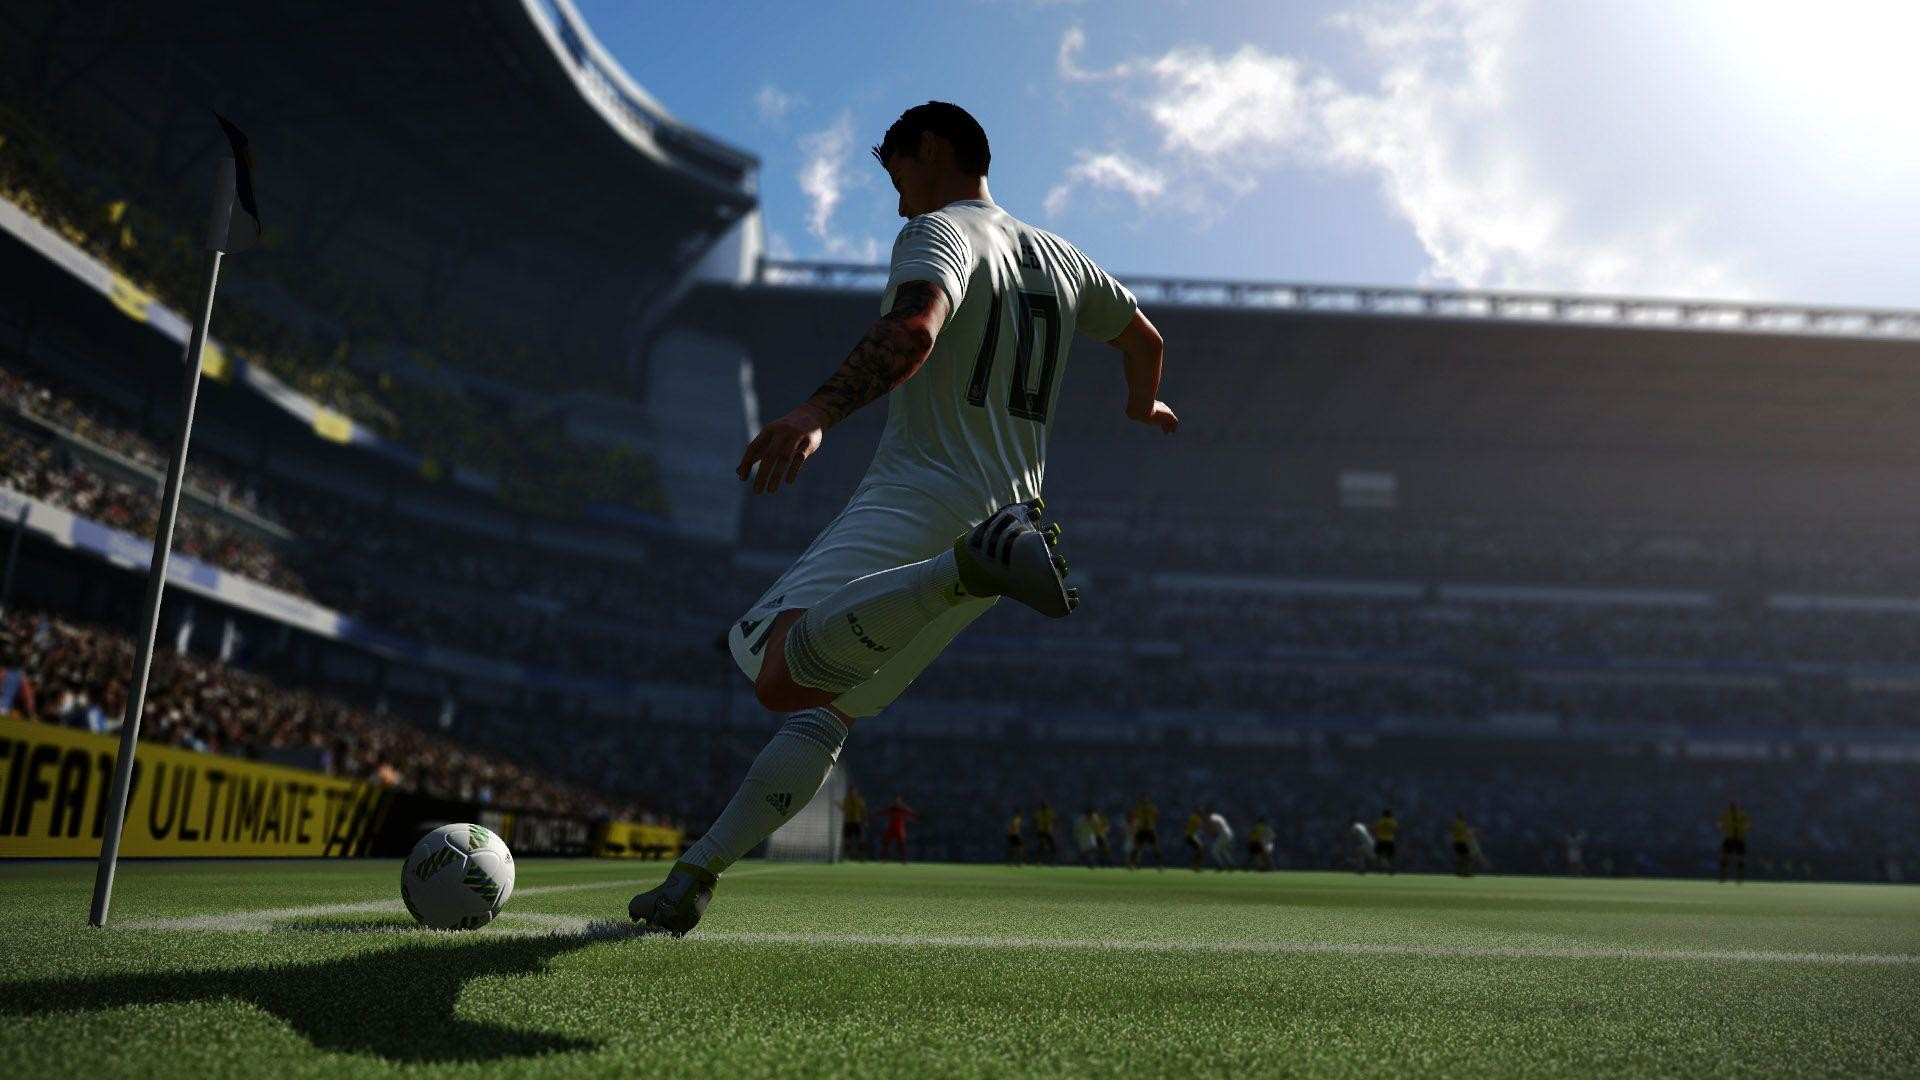 Res: 1920x1080, FIFA 17 Wallpapers - Free Games Wallpaper on iPlayTube